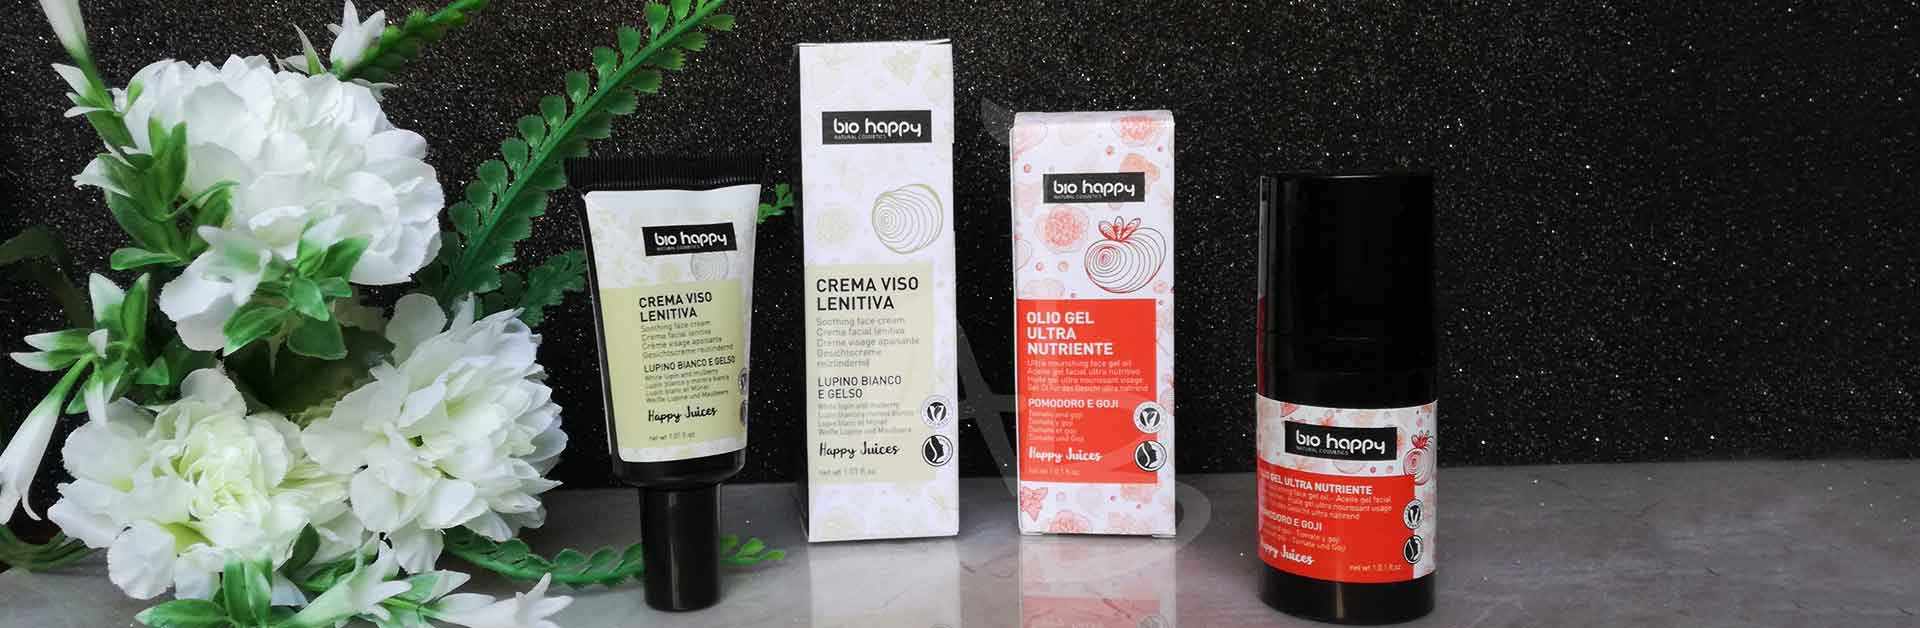 Linea Happy Juice idratazione viso di Bio Happy